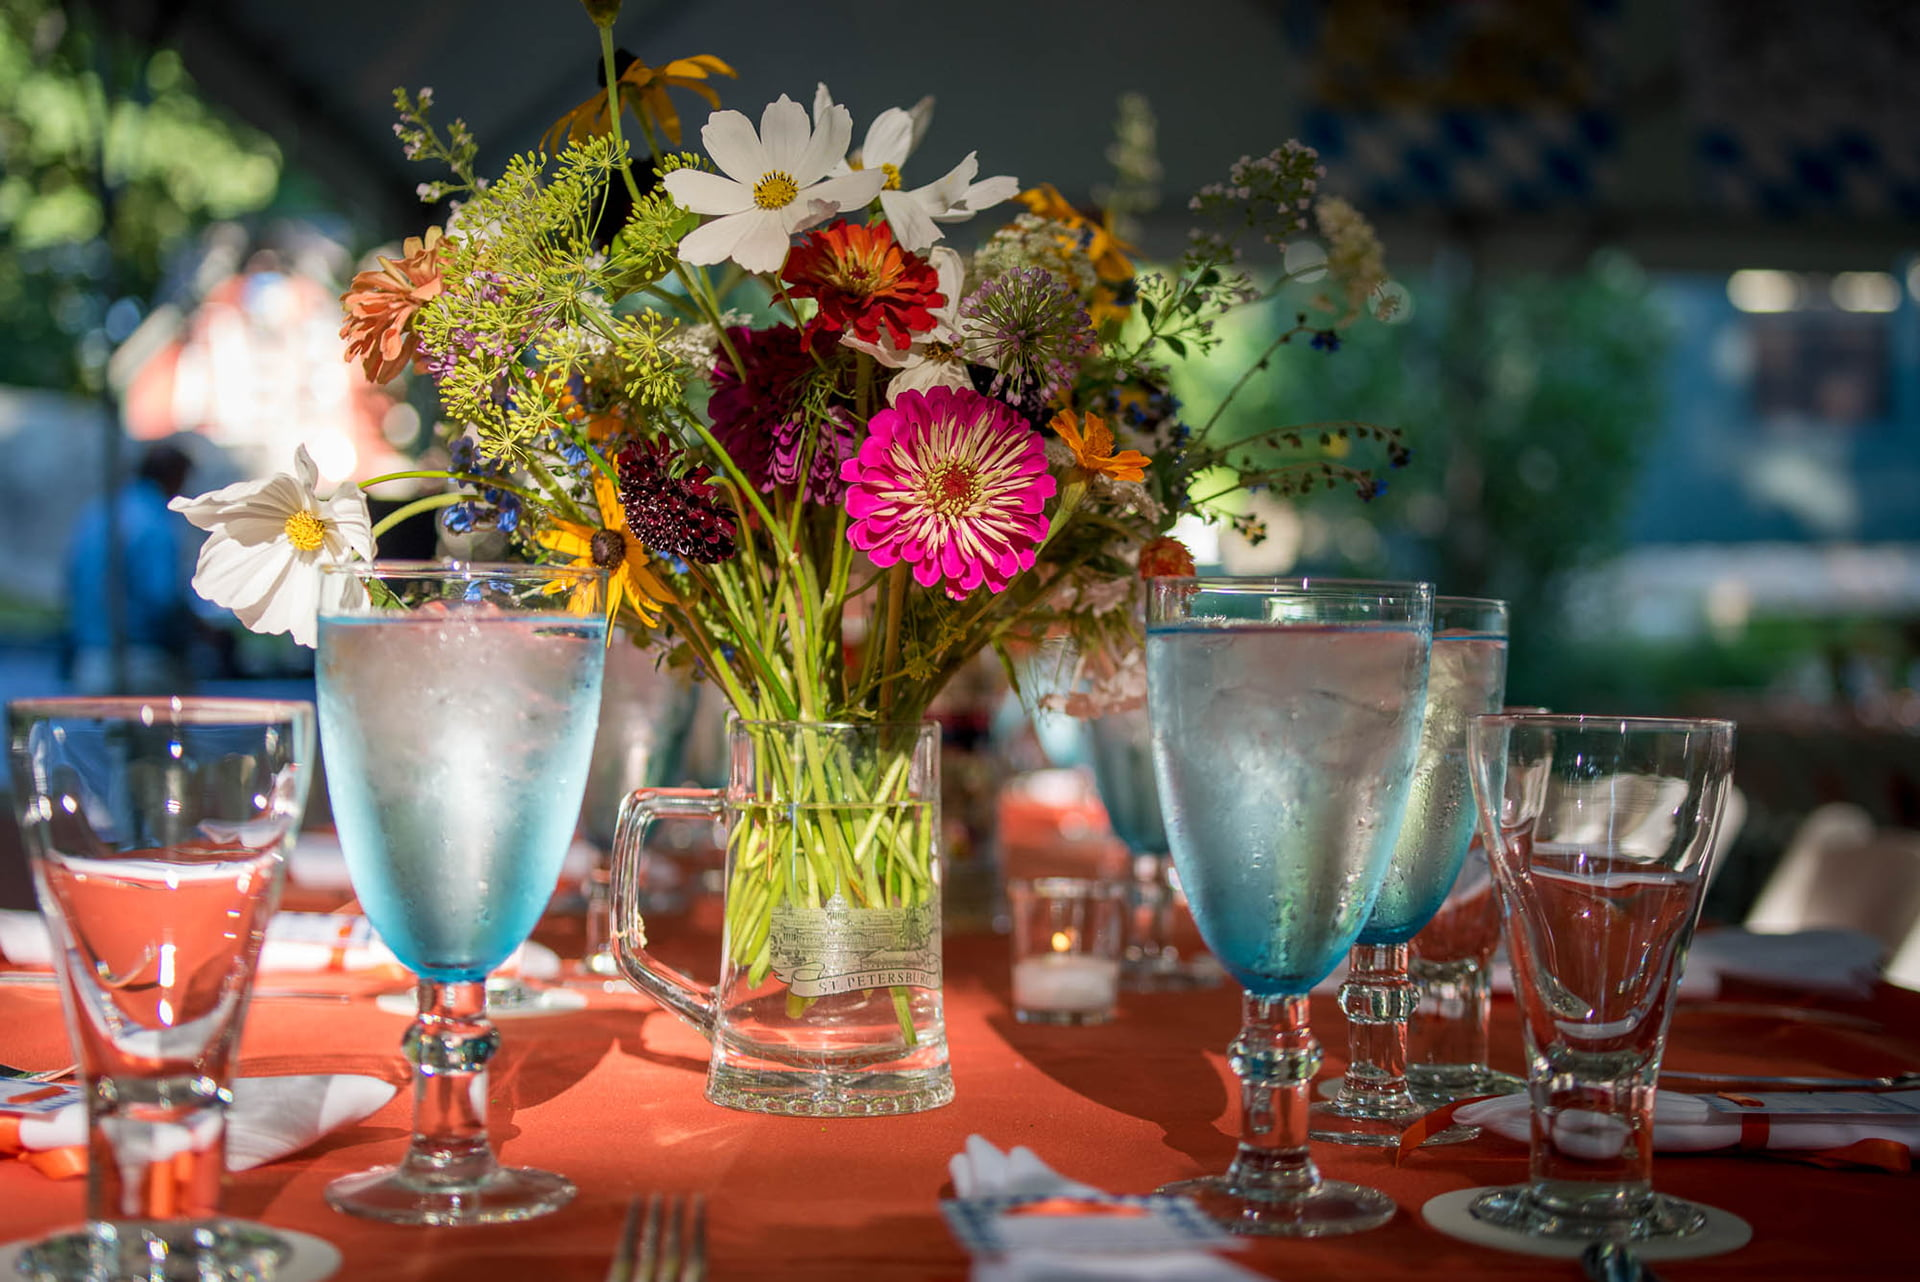 weddings-bethany-table-with-flowers